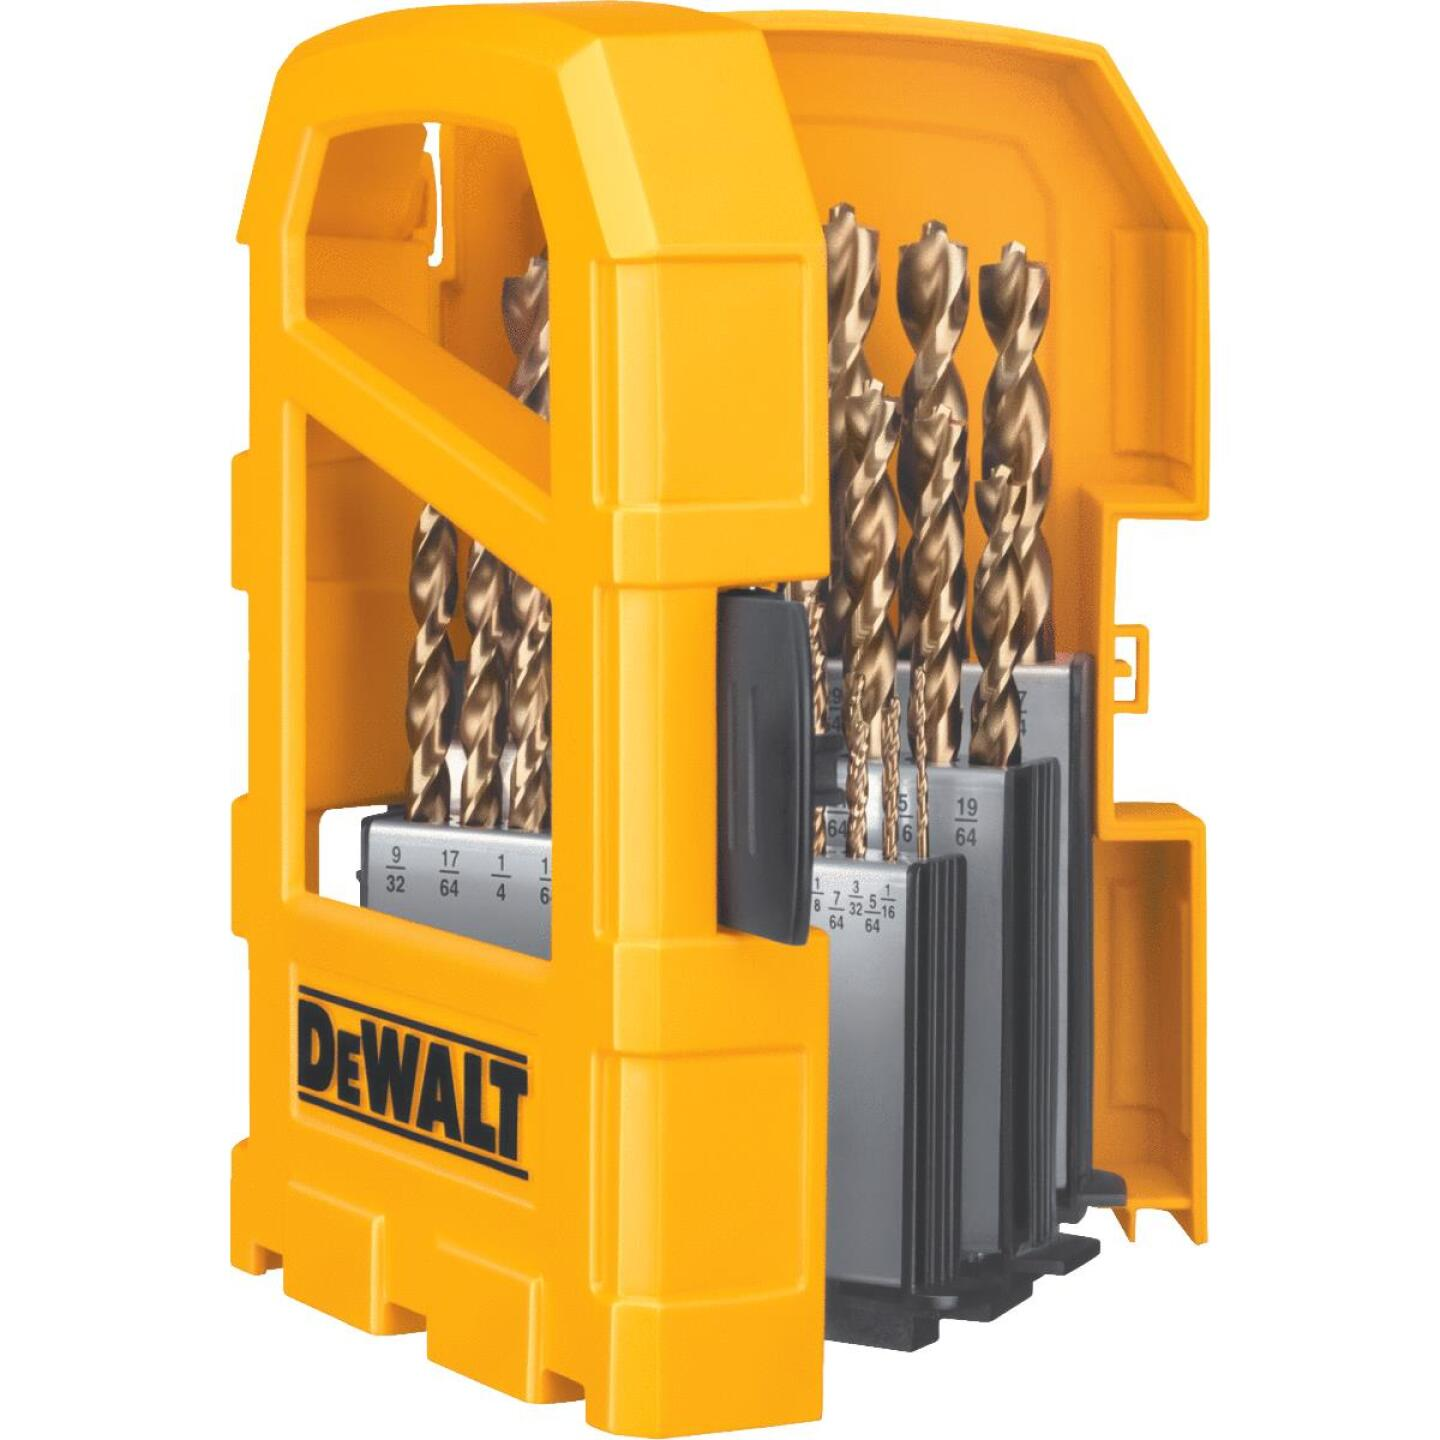 DeWalt 29-Piece Gold Ferrous Pilot Point Drill Bit Set, 1/16 In. thru 9/32 In. Image 3